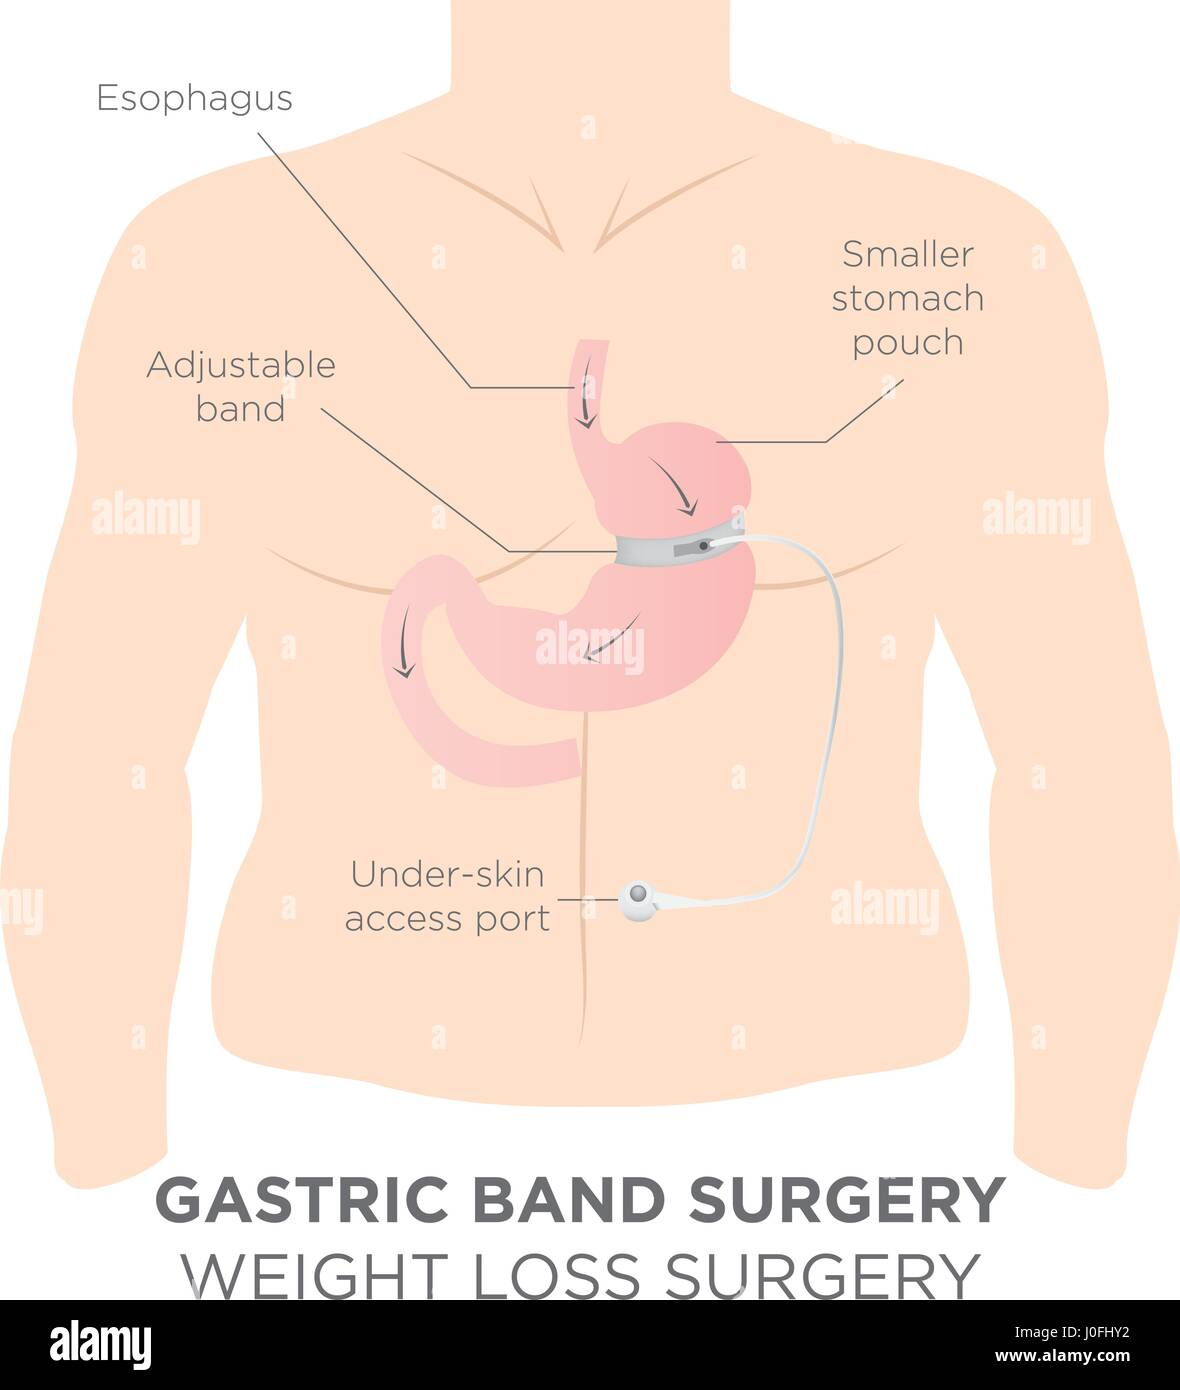 Gastric Band Weight Loss Surgery.  If you Tighten or Loosen it, It Lets More Food Slide Down in Lower Stomach. - Stock Image